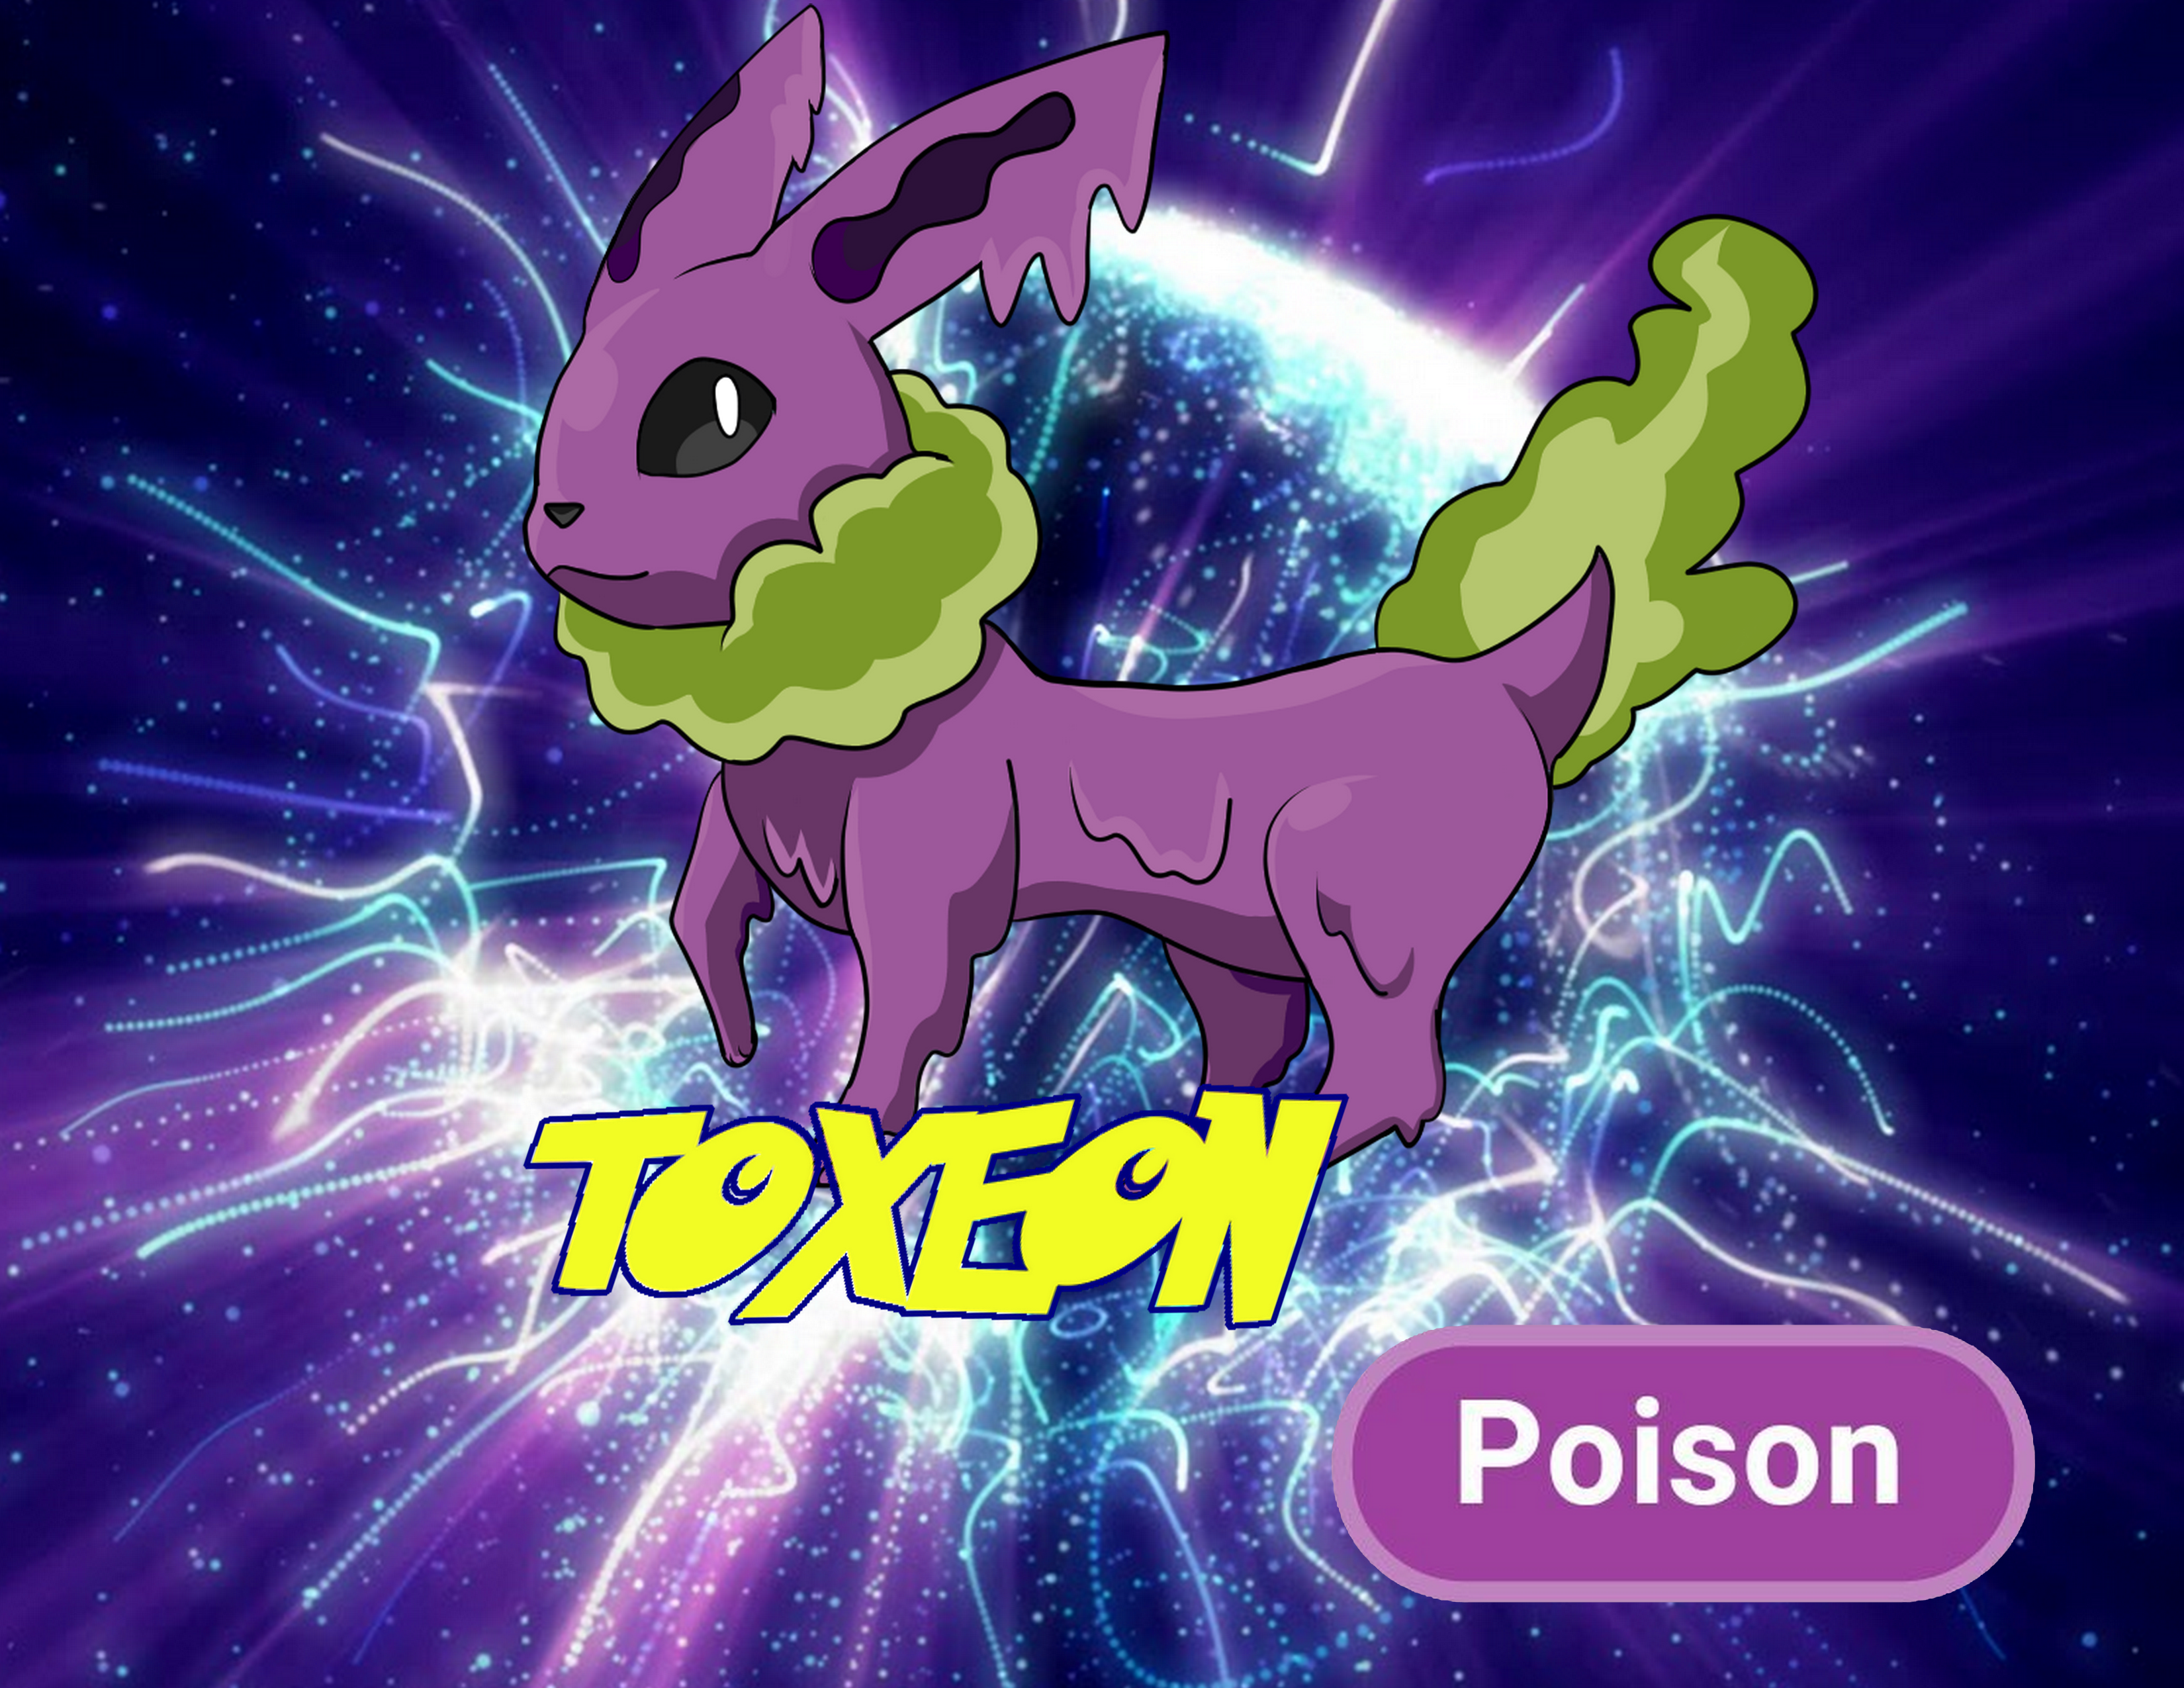 Toxeon